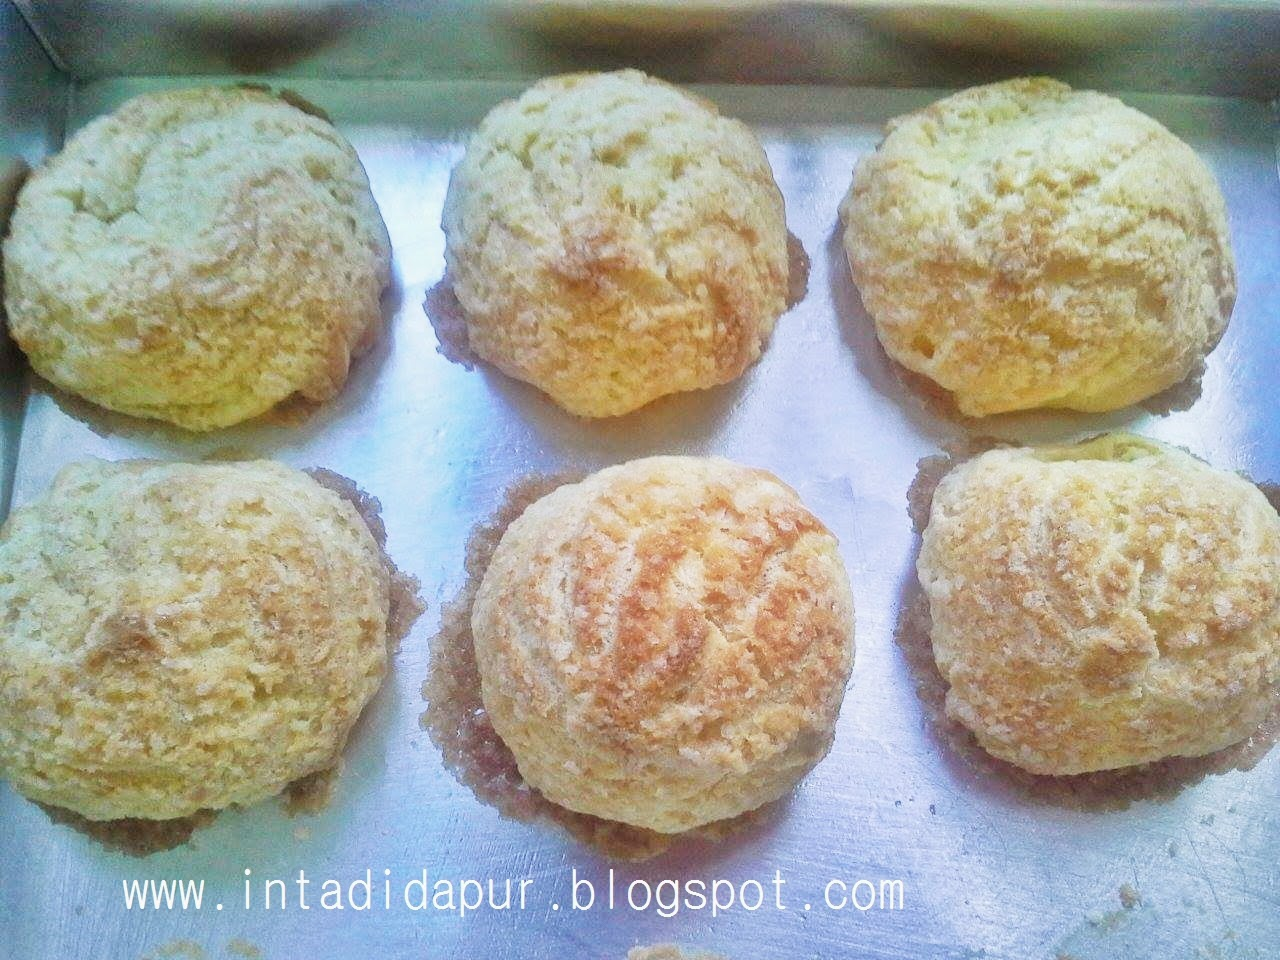 Having Fun In The Kitchen: Japanese Choux Pastry (Kue Soes